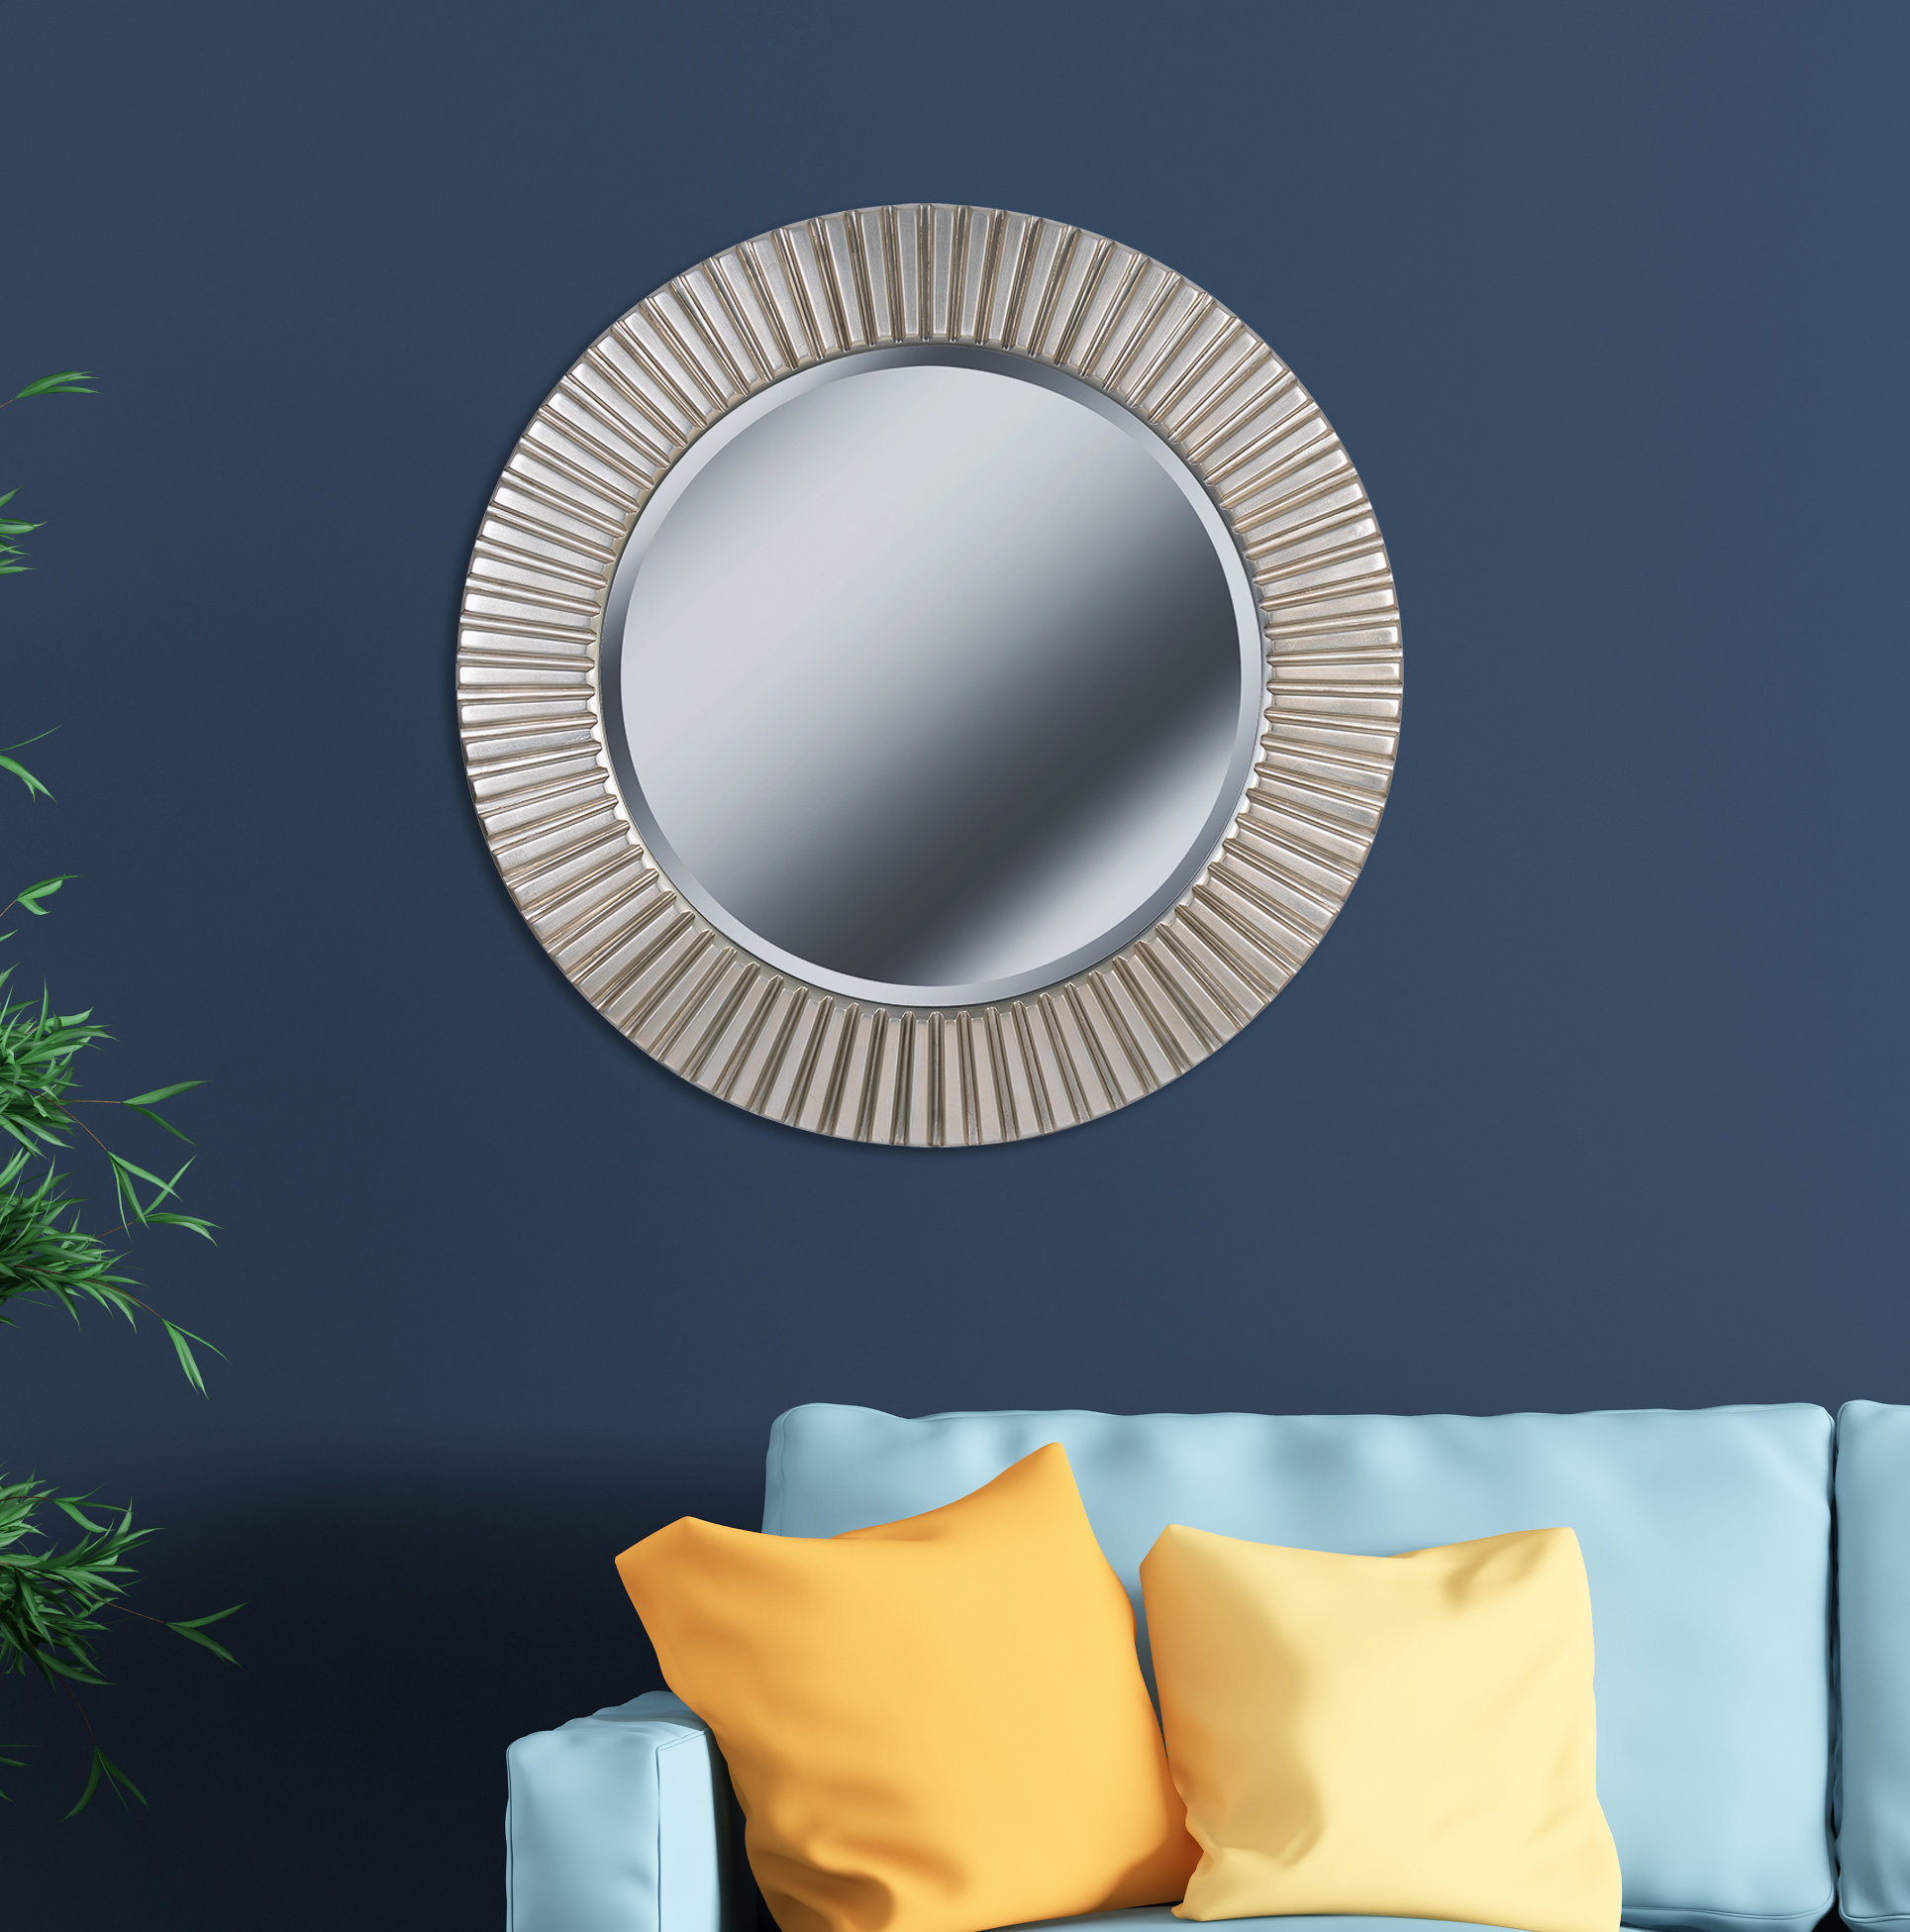 Round Eclectic Accent Mirror Intended For Round Eclectic Accent Mirrors (Image 14 of 20)